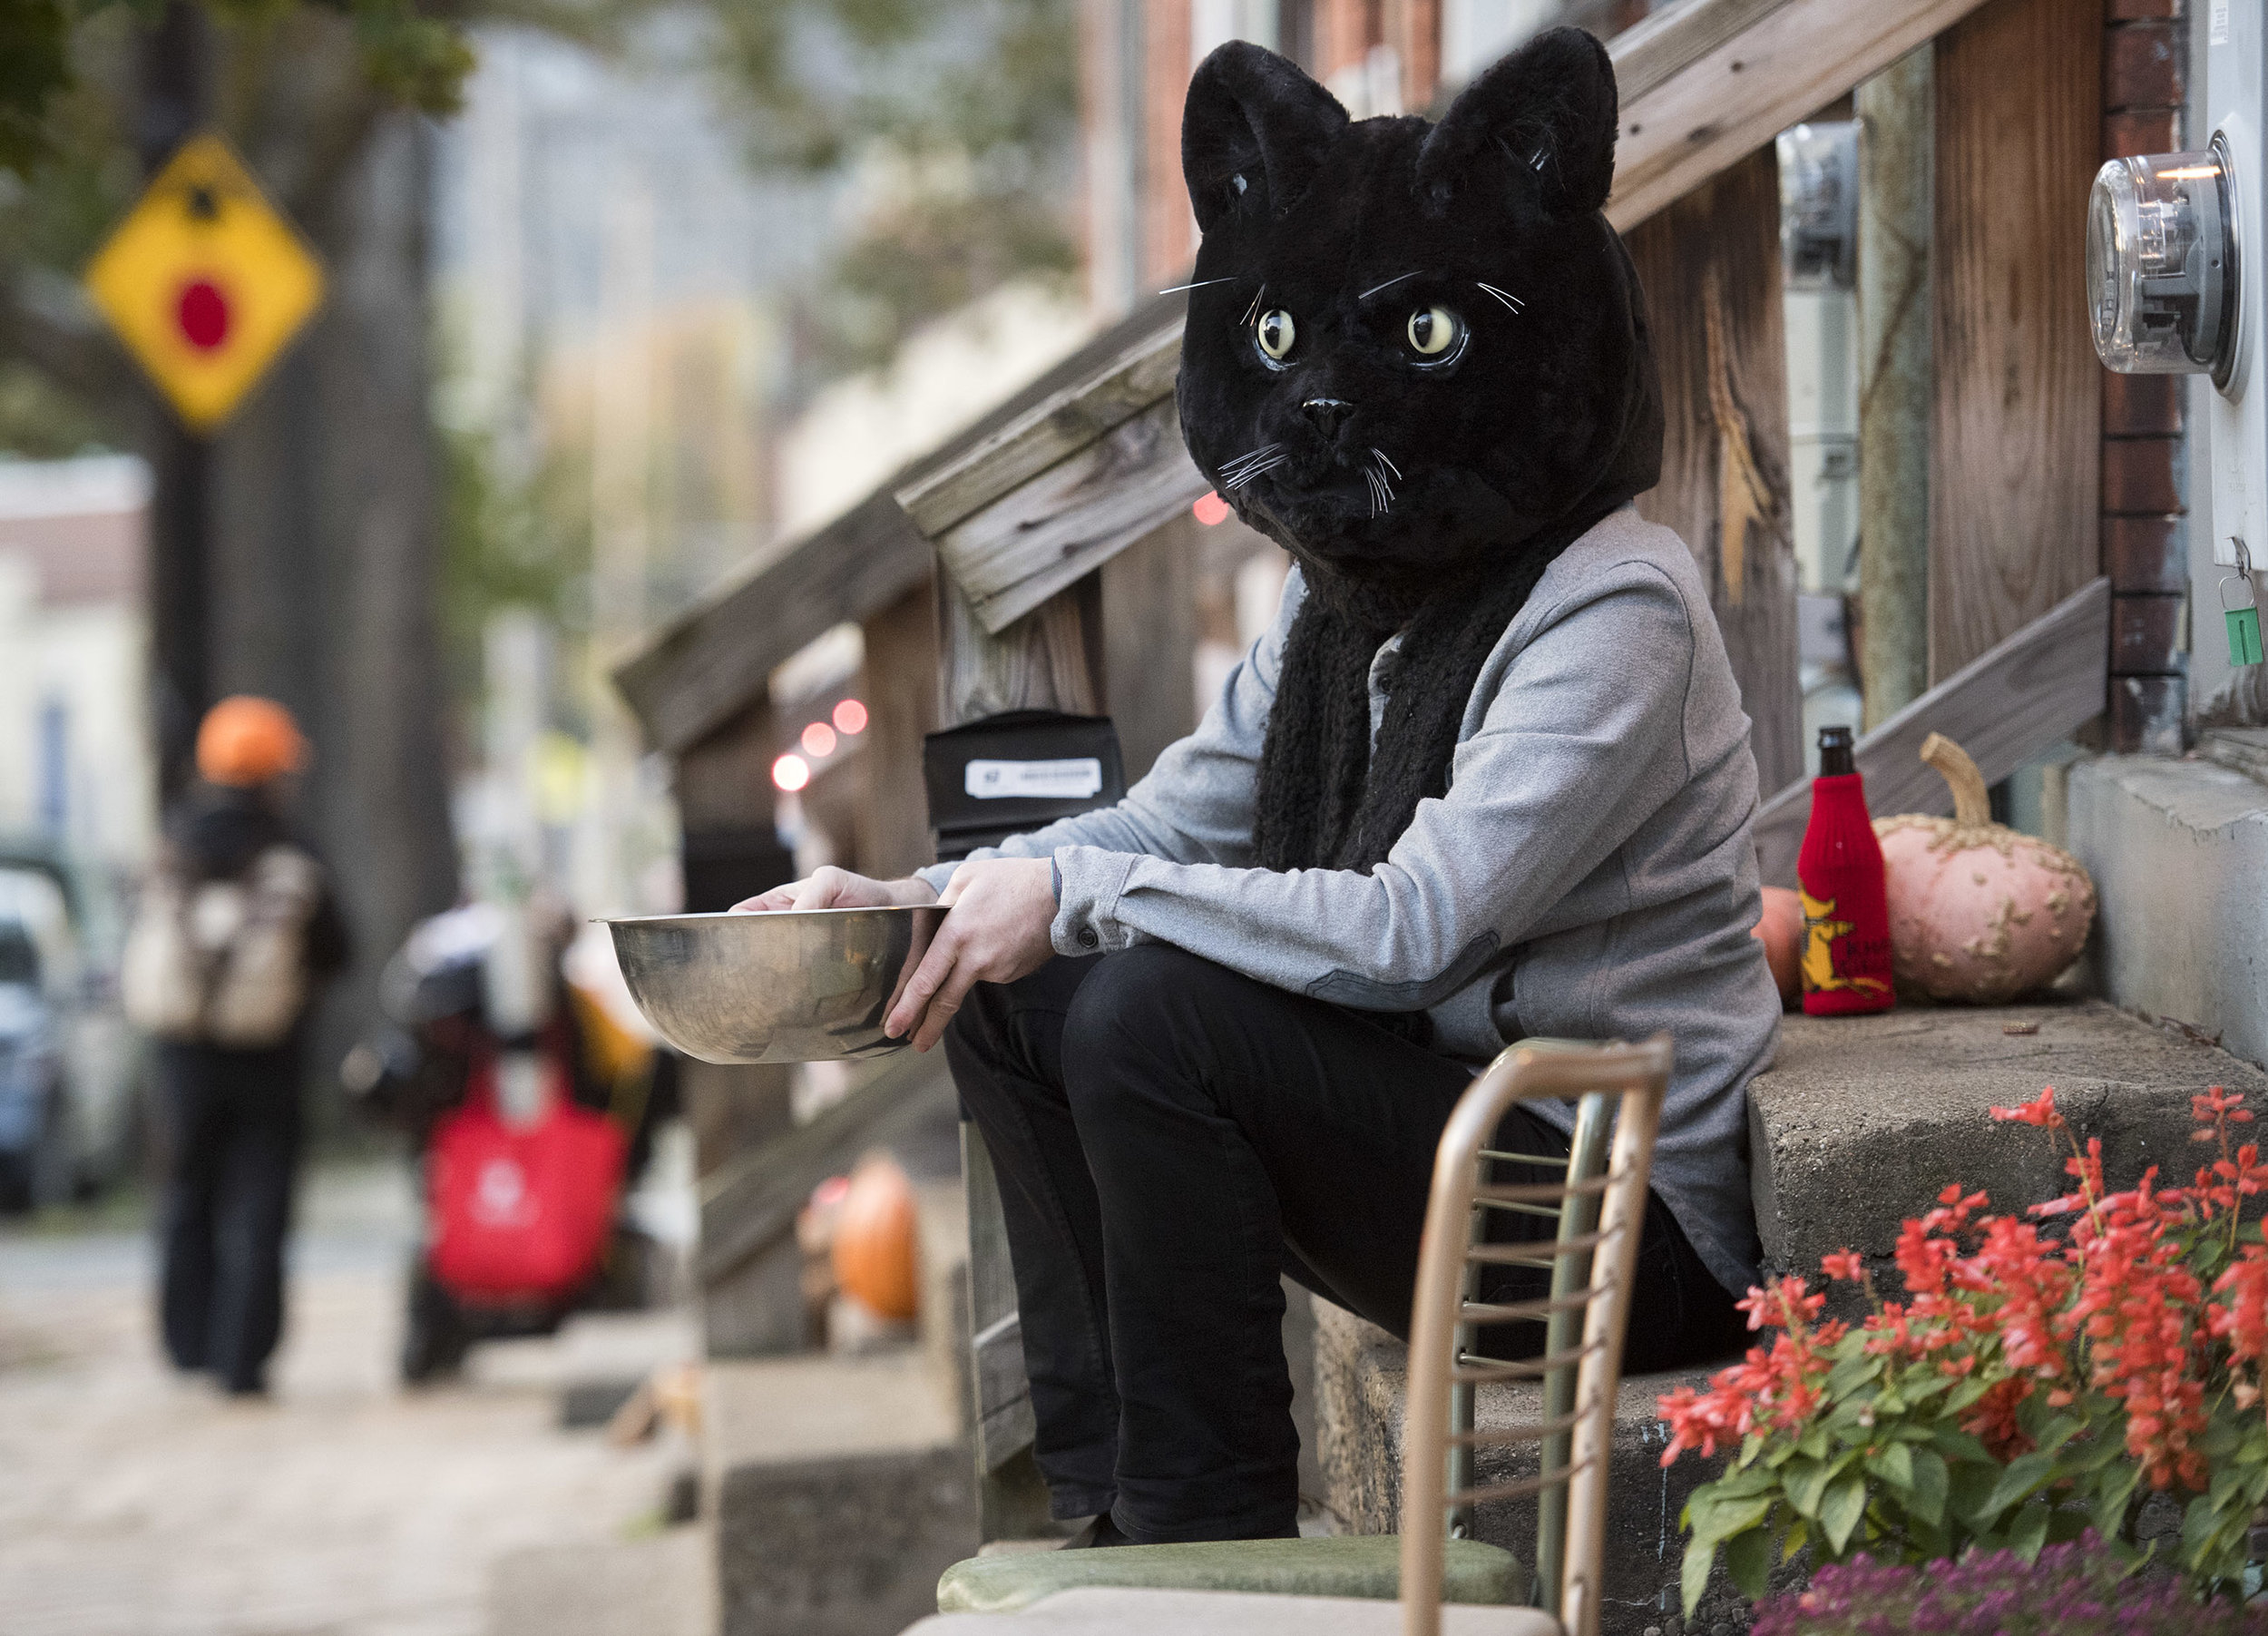 Colin Williams waits patiently for trick-or-treaters on Tuesday, Oct. 31, 2017 in Lawrenceville. (Steph Chambers/Post-Gazette)